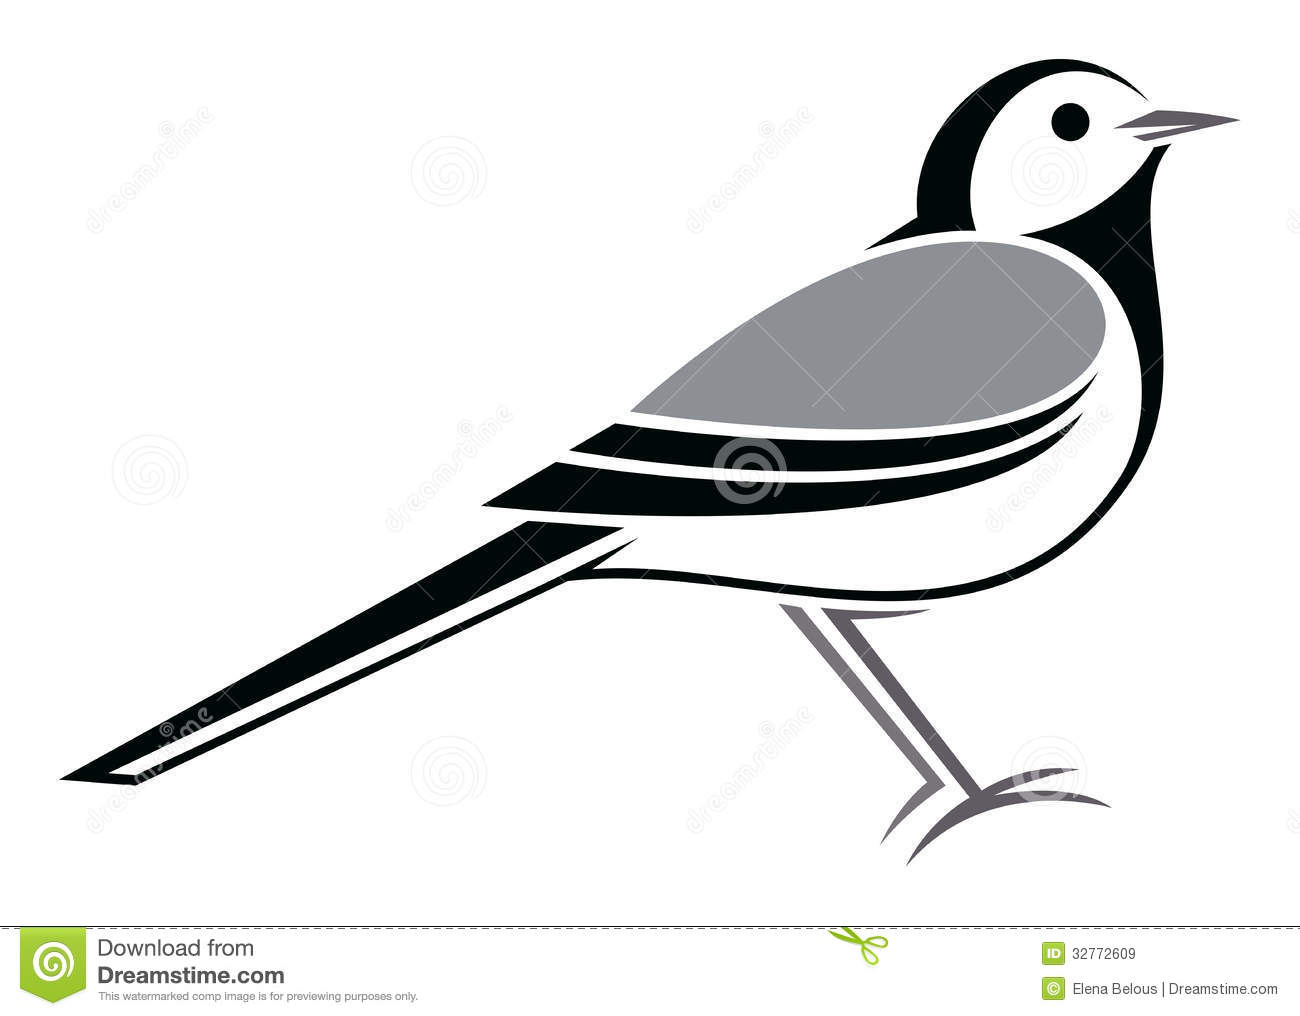 Wagtail clipart #17, Download drawings